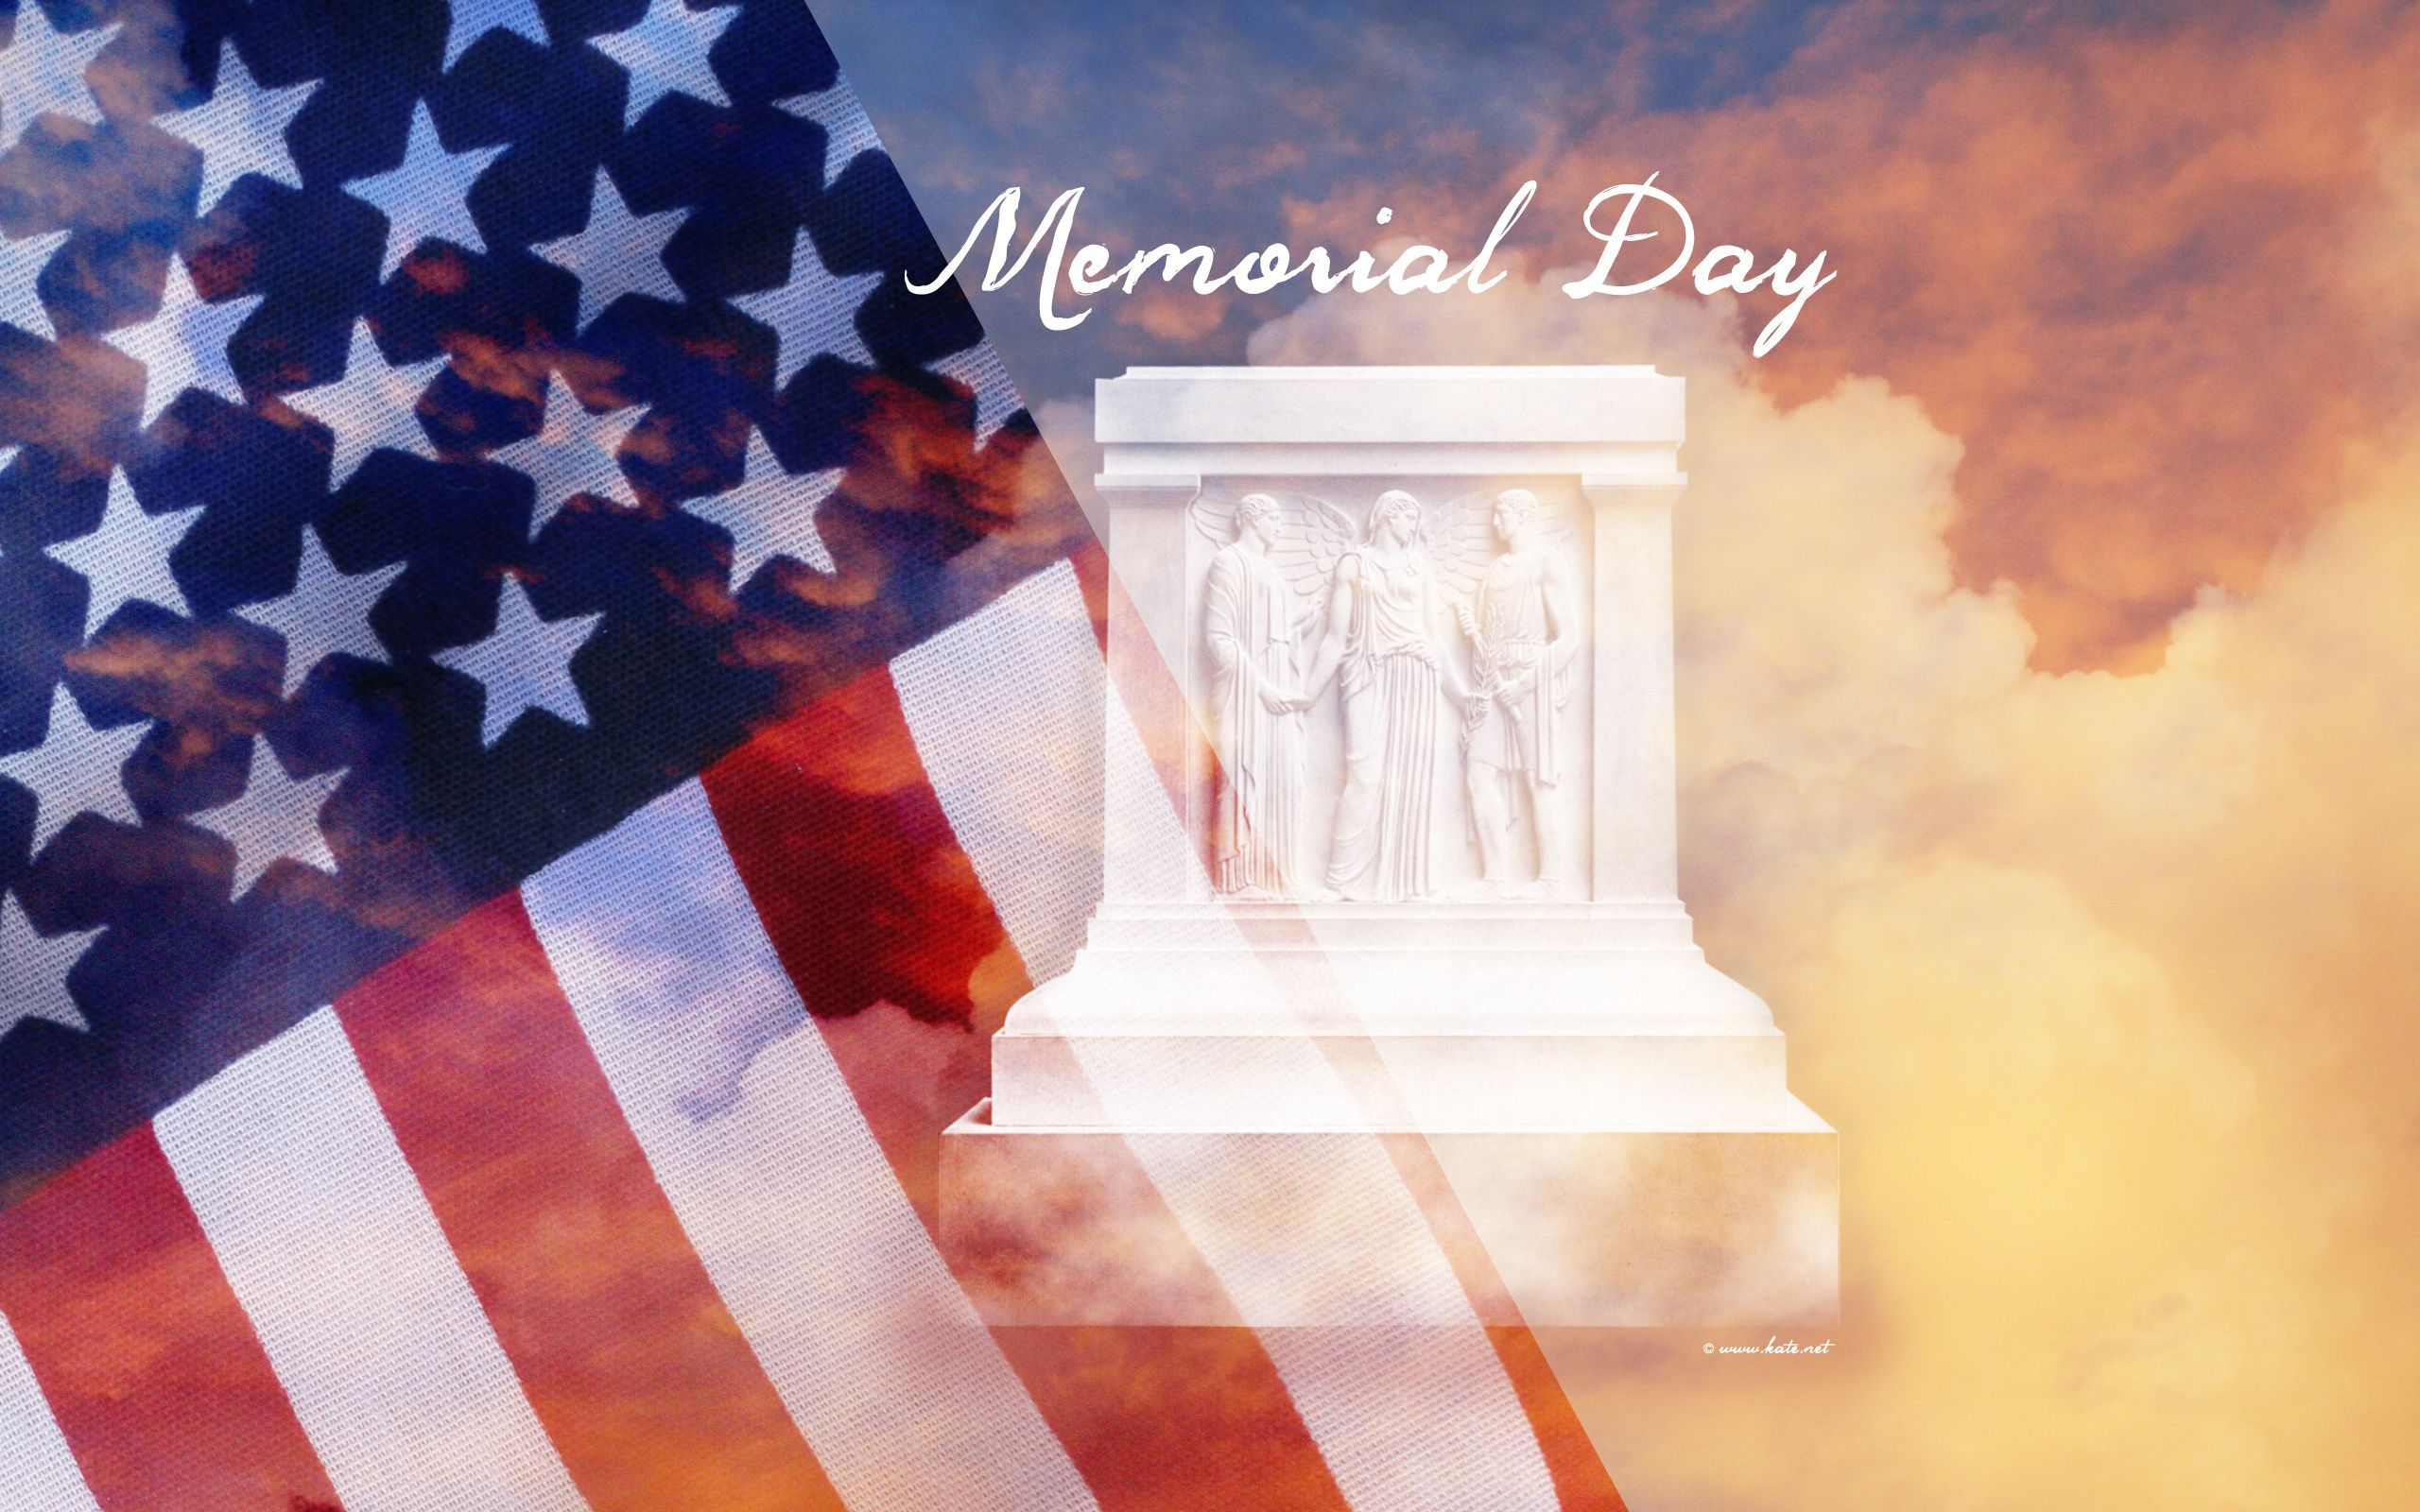 Memorial Day HD Wallpapers Image And Pictures For Desktop